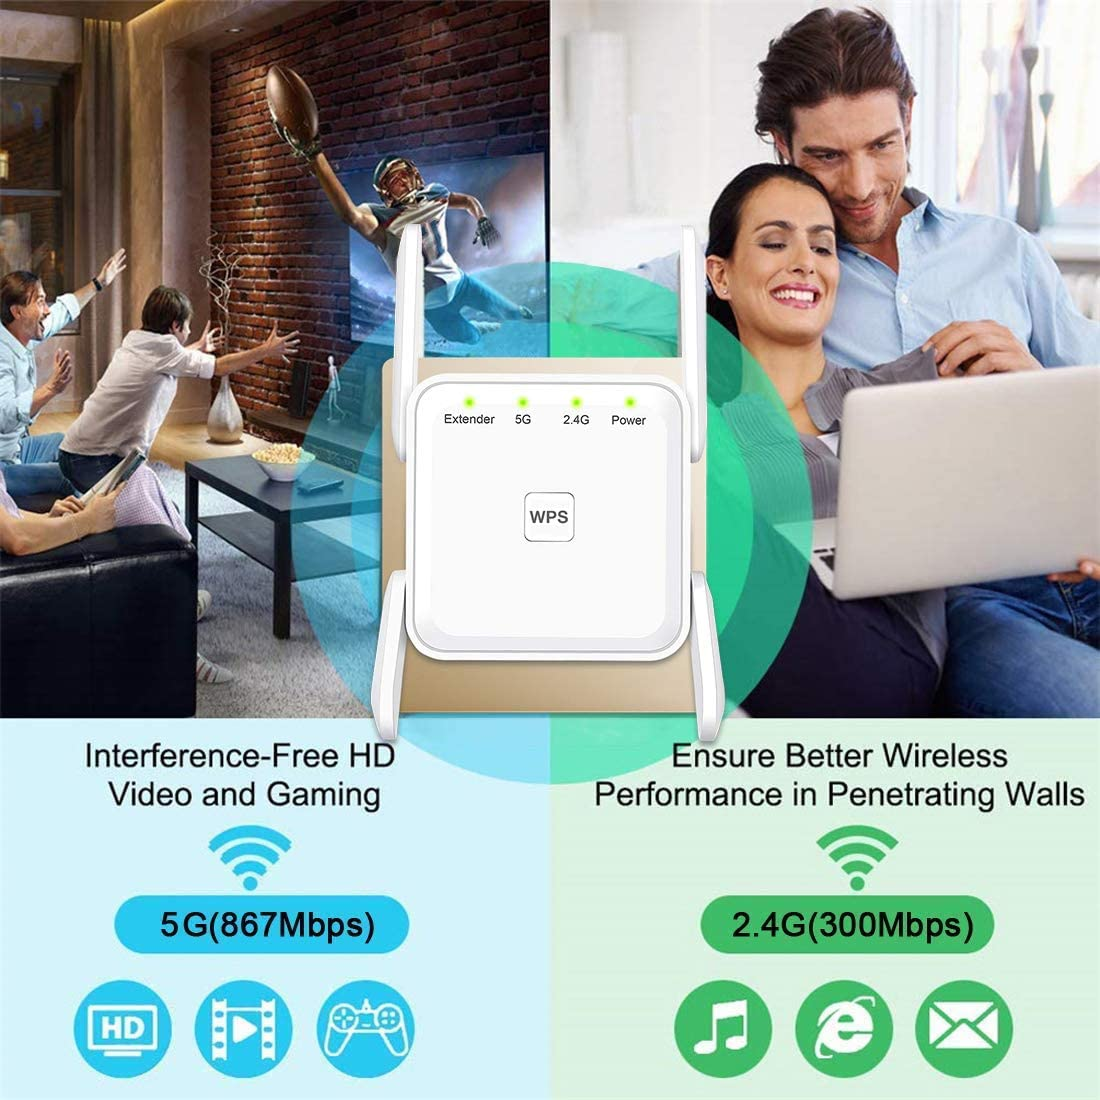 Extend WiFi Signal to Smart Home /& Alexa Devices(CW1206K) 4 Antennas 360/° Full Coverage 1200Mbps Wireless Signal Repeater Booster Carantee WiFi Range Extender Dual Band 2.4G and 5G Expander